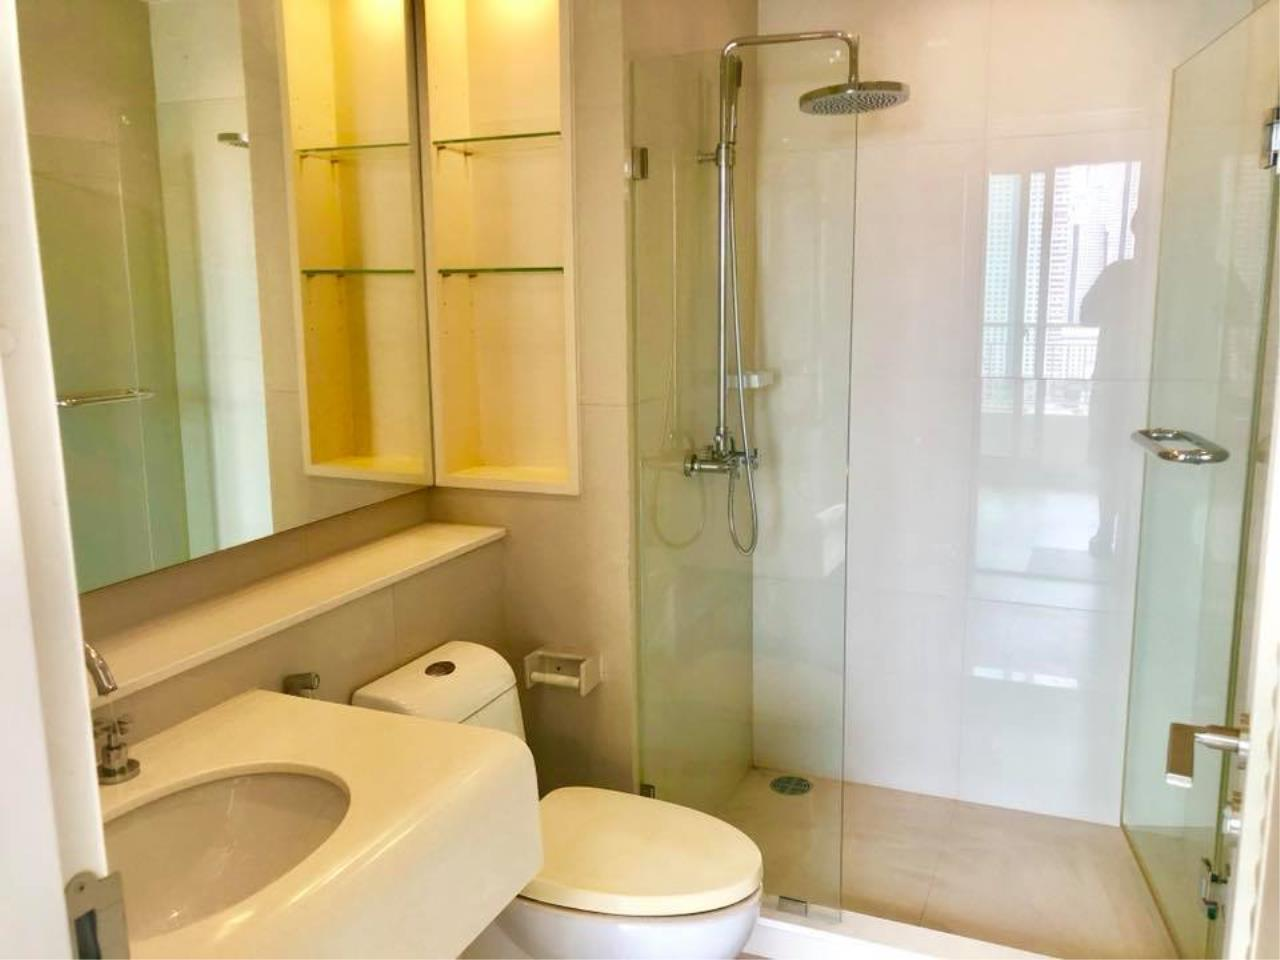 Quality Life Property Agency's S A L E !! || IVY SATHORN 10|| 1BR 33.64 Sq.m. NEW UNIT!! 10